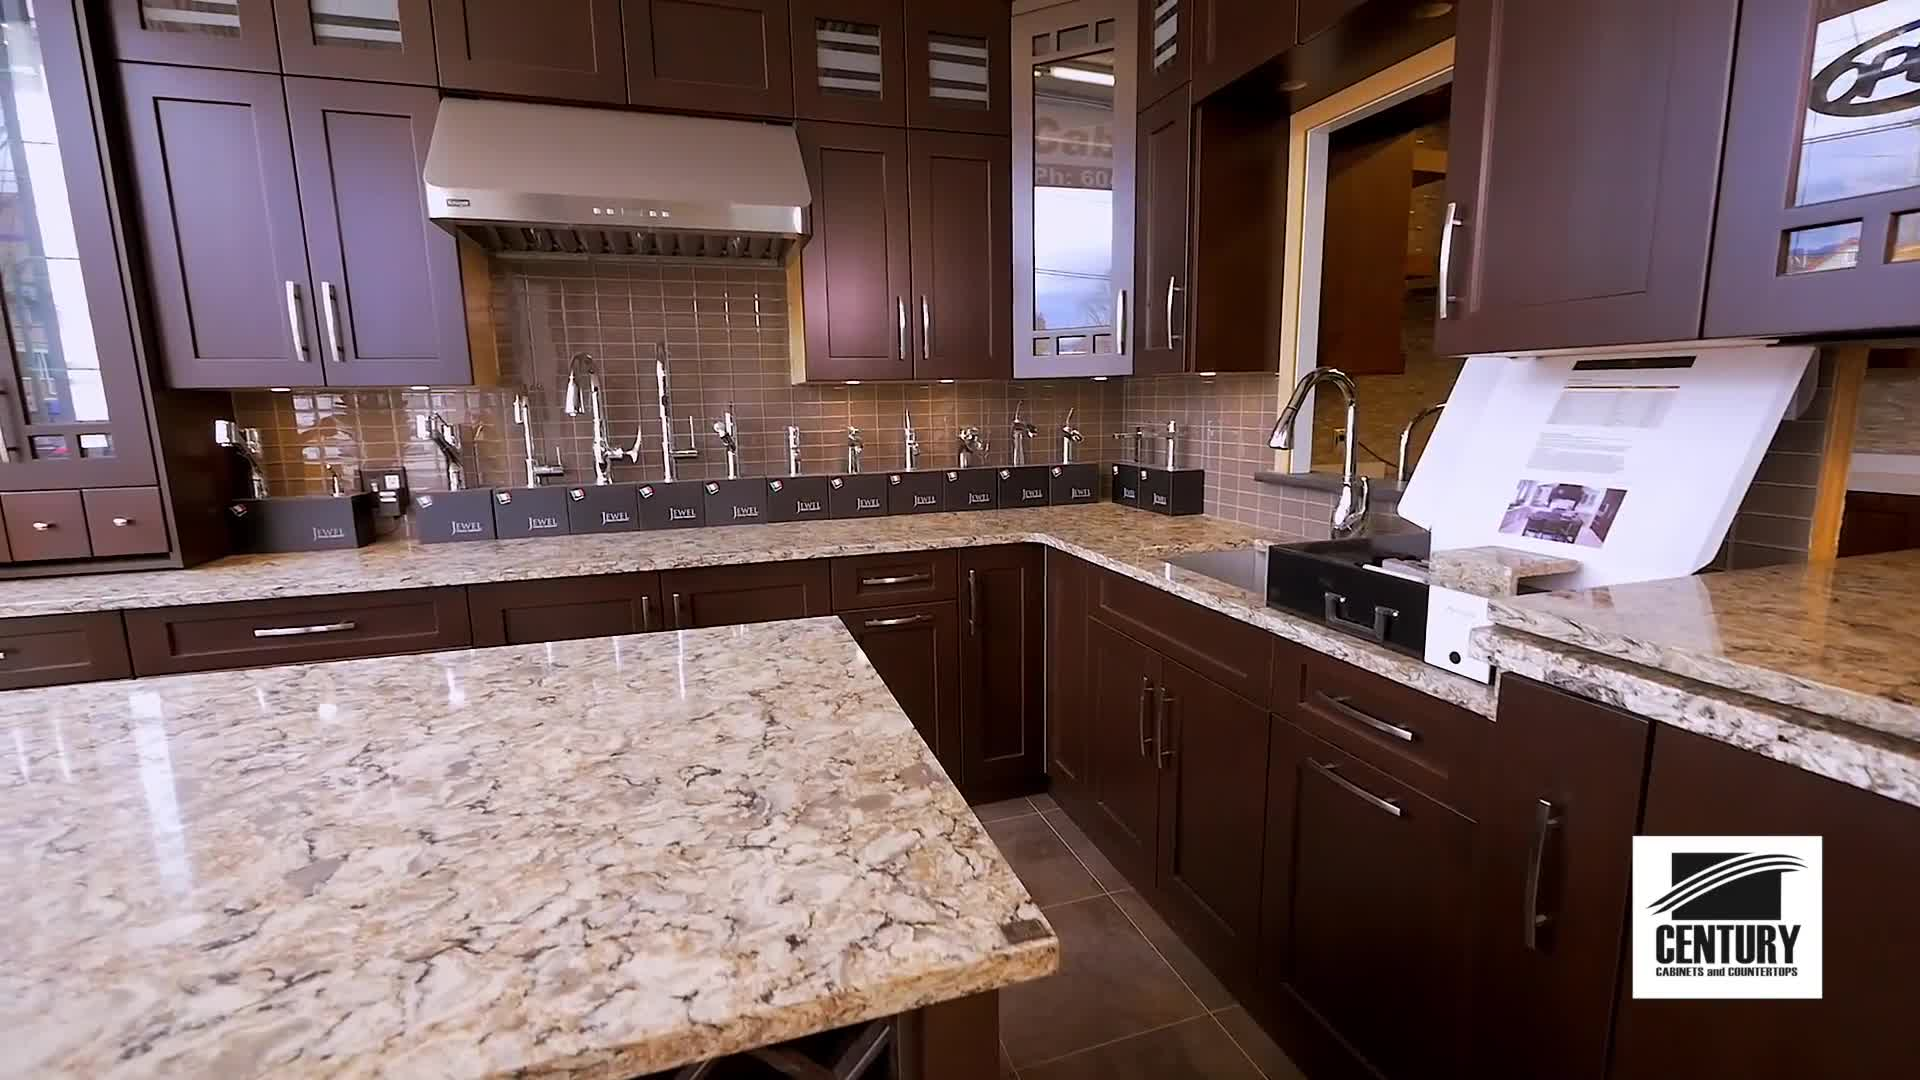 View Century Cabinets & Counter Tops's Coquitlam profile